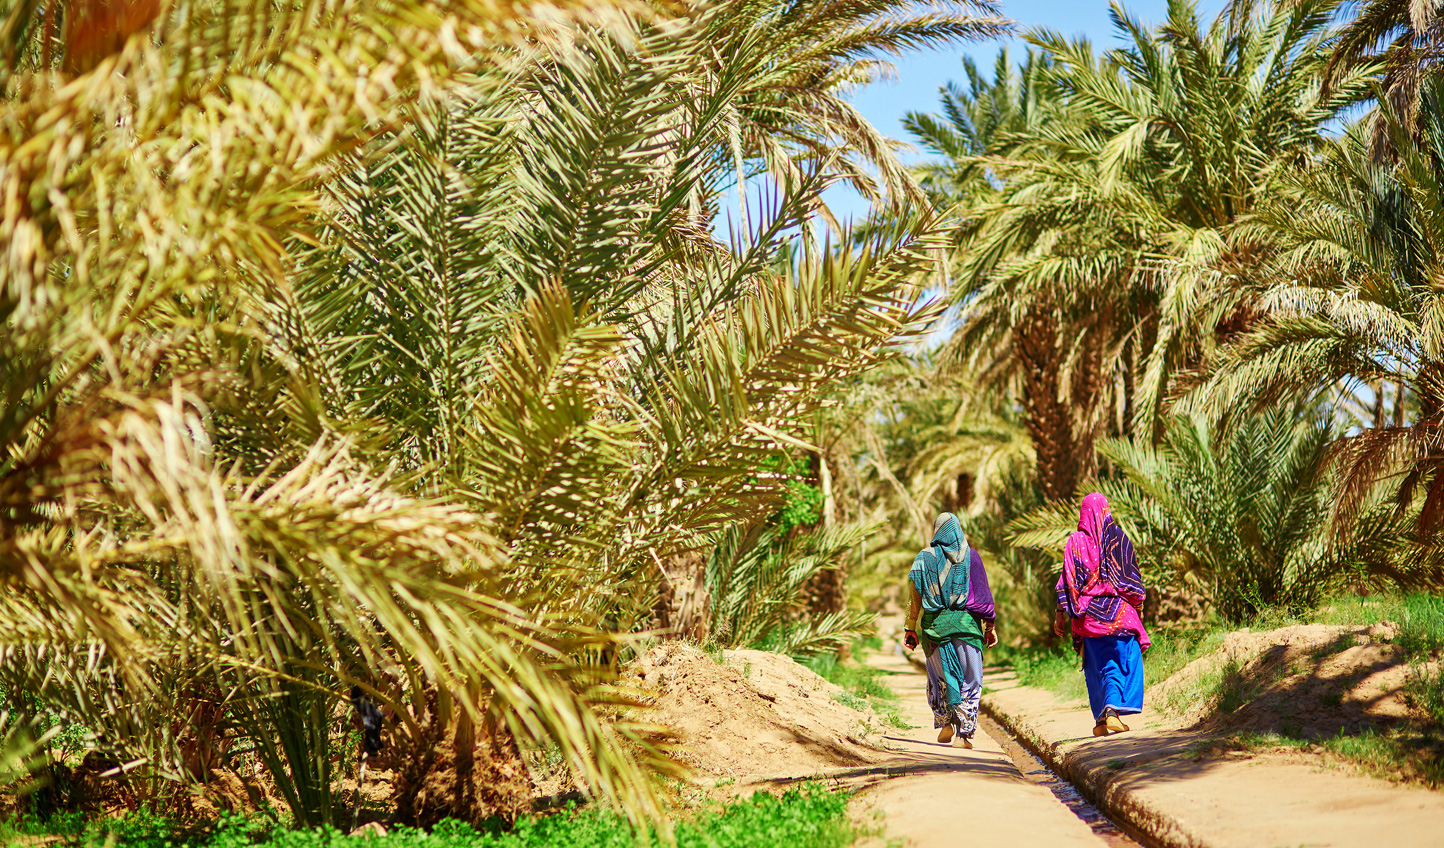 Get to know the people of Merzouga